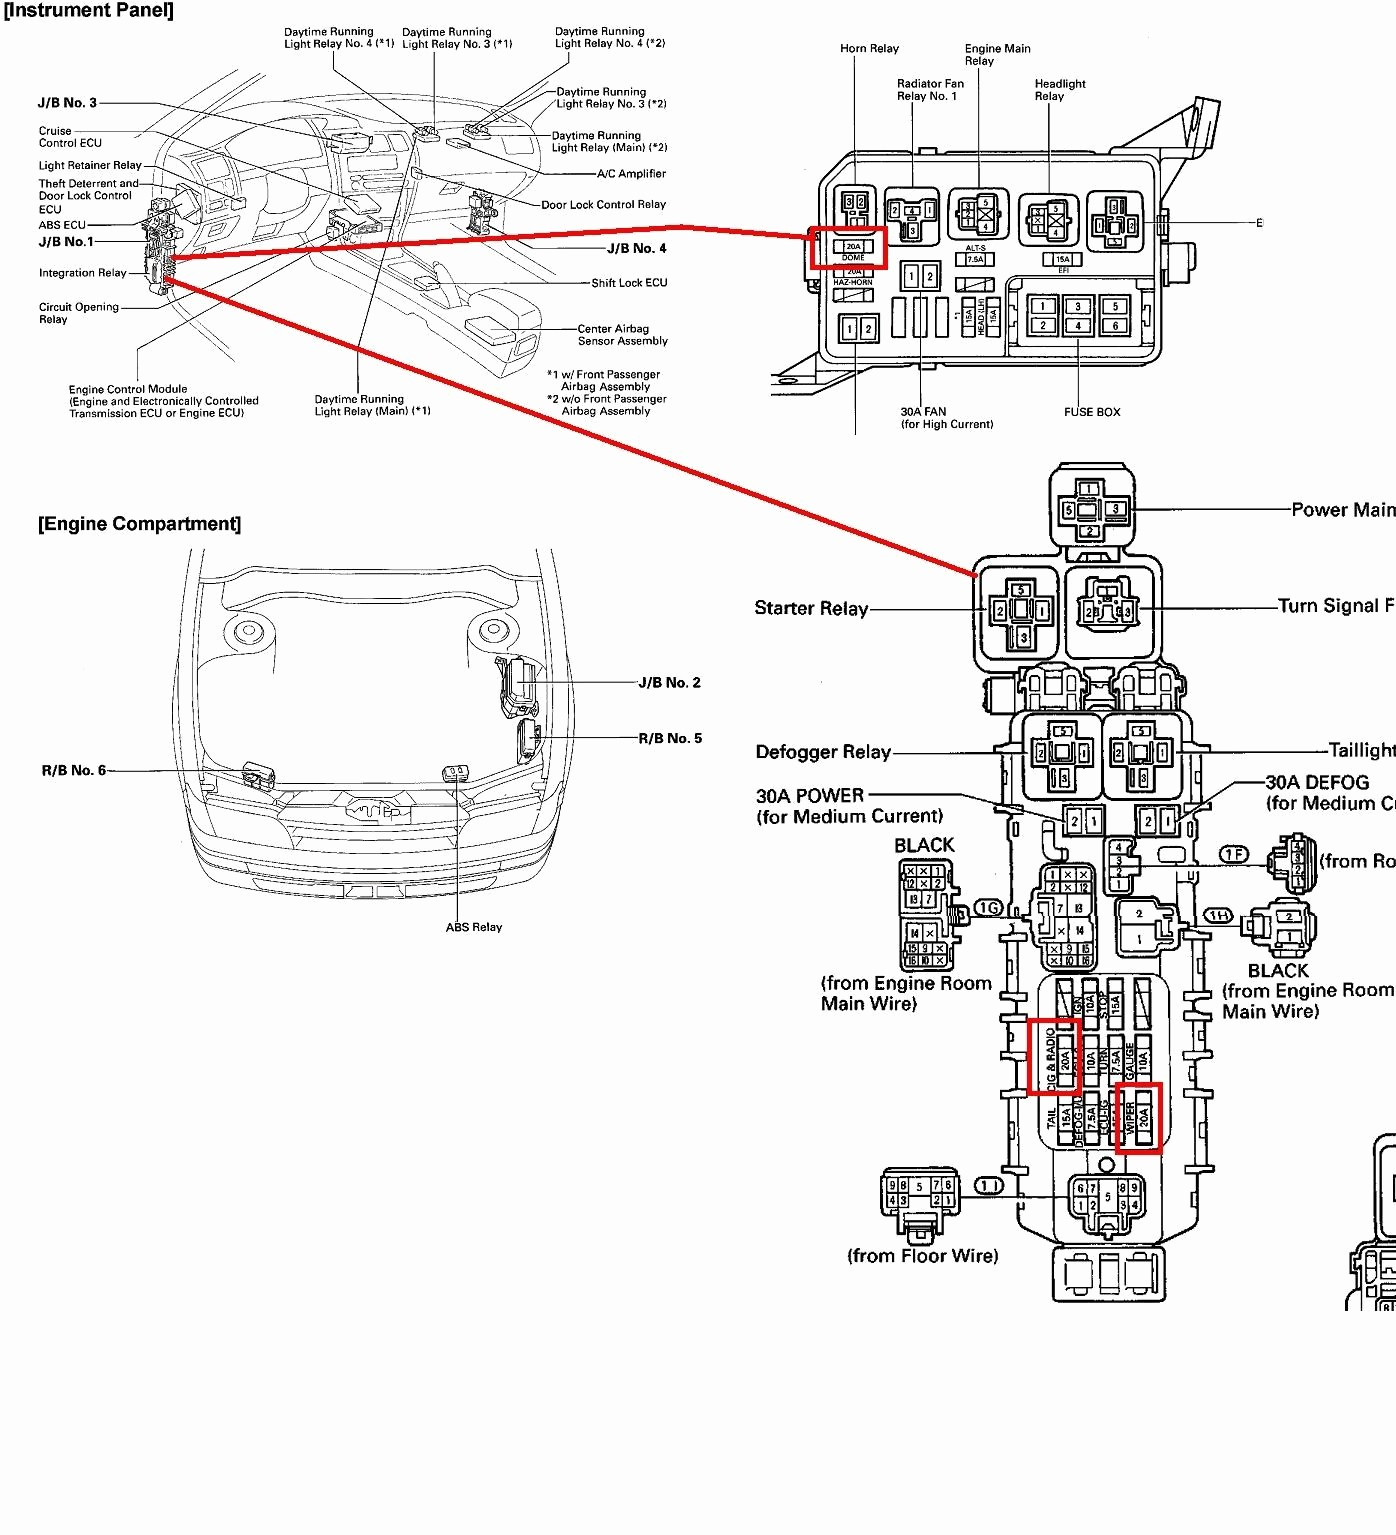 2002 kium optima engine wiring diagram